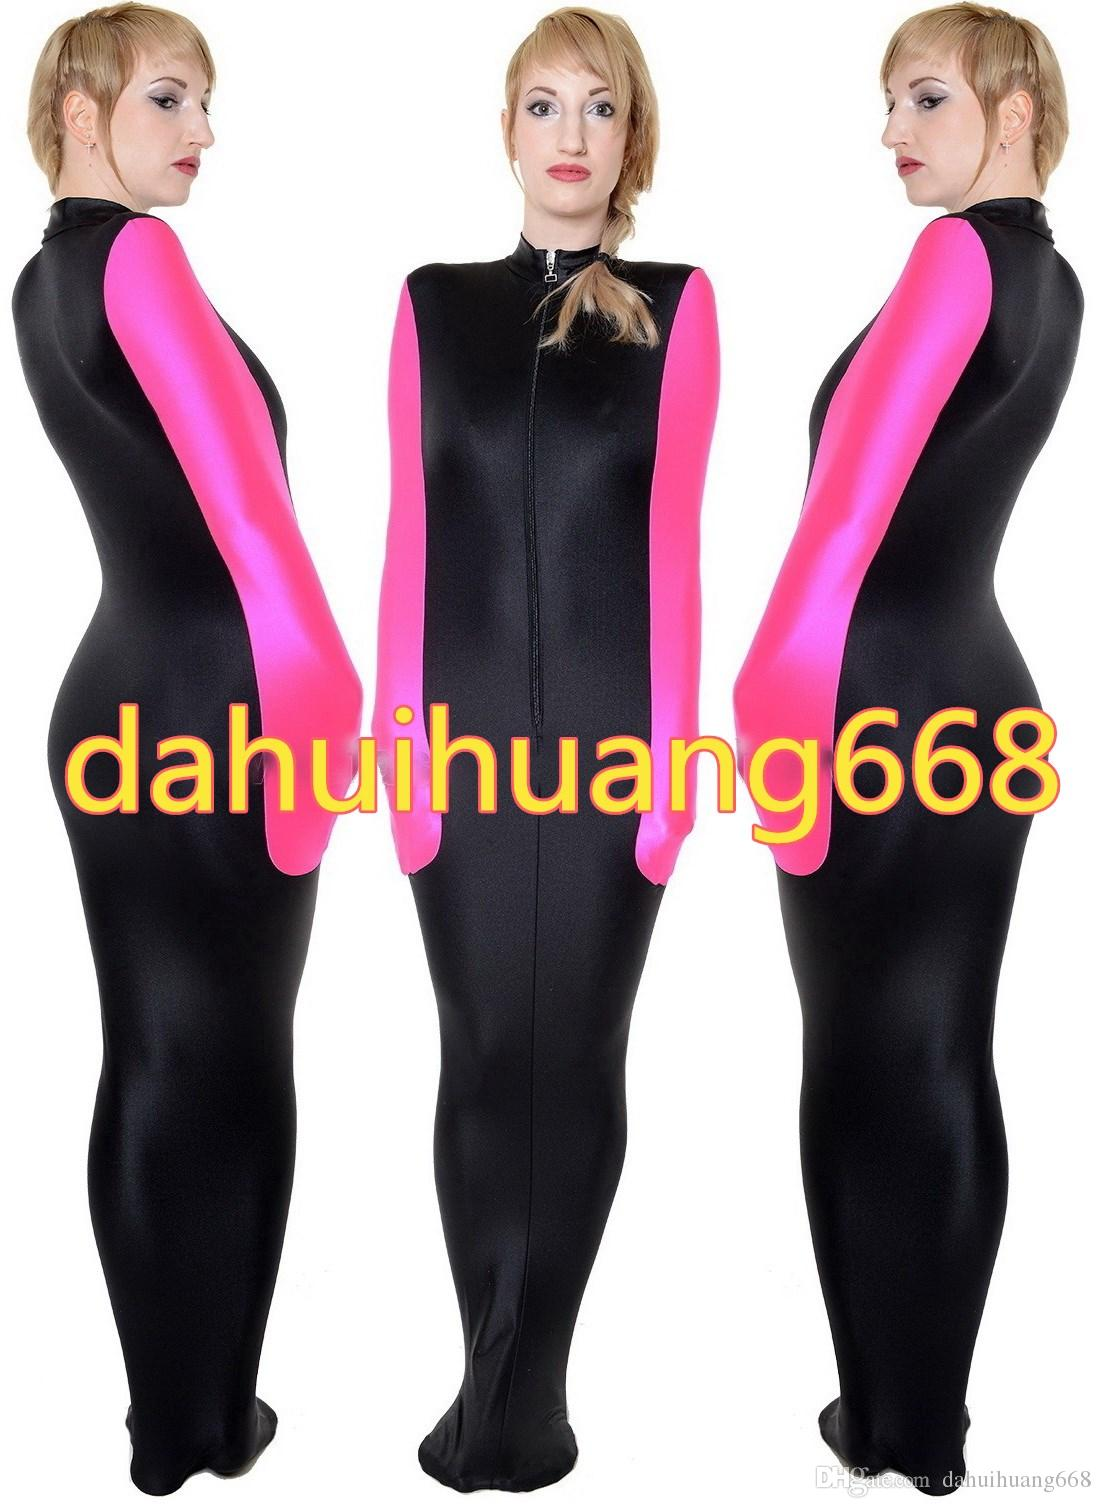 Black/Pink Lycra Spandex Mummy Suit Costumes Unisex Sleeping Bags Mummy Costumes With internal Arm Sleeves Halloween Cosplay Costumes DH113